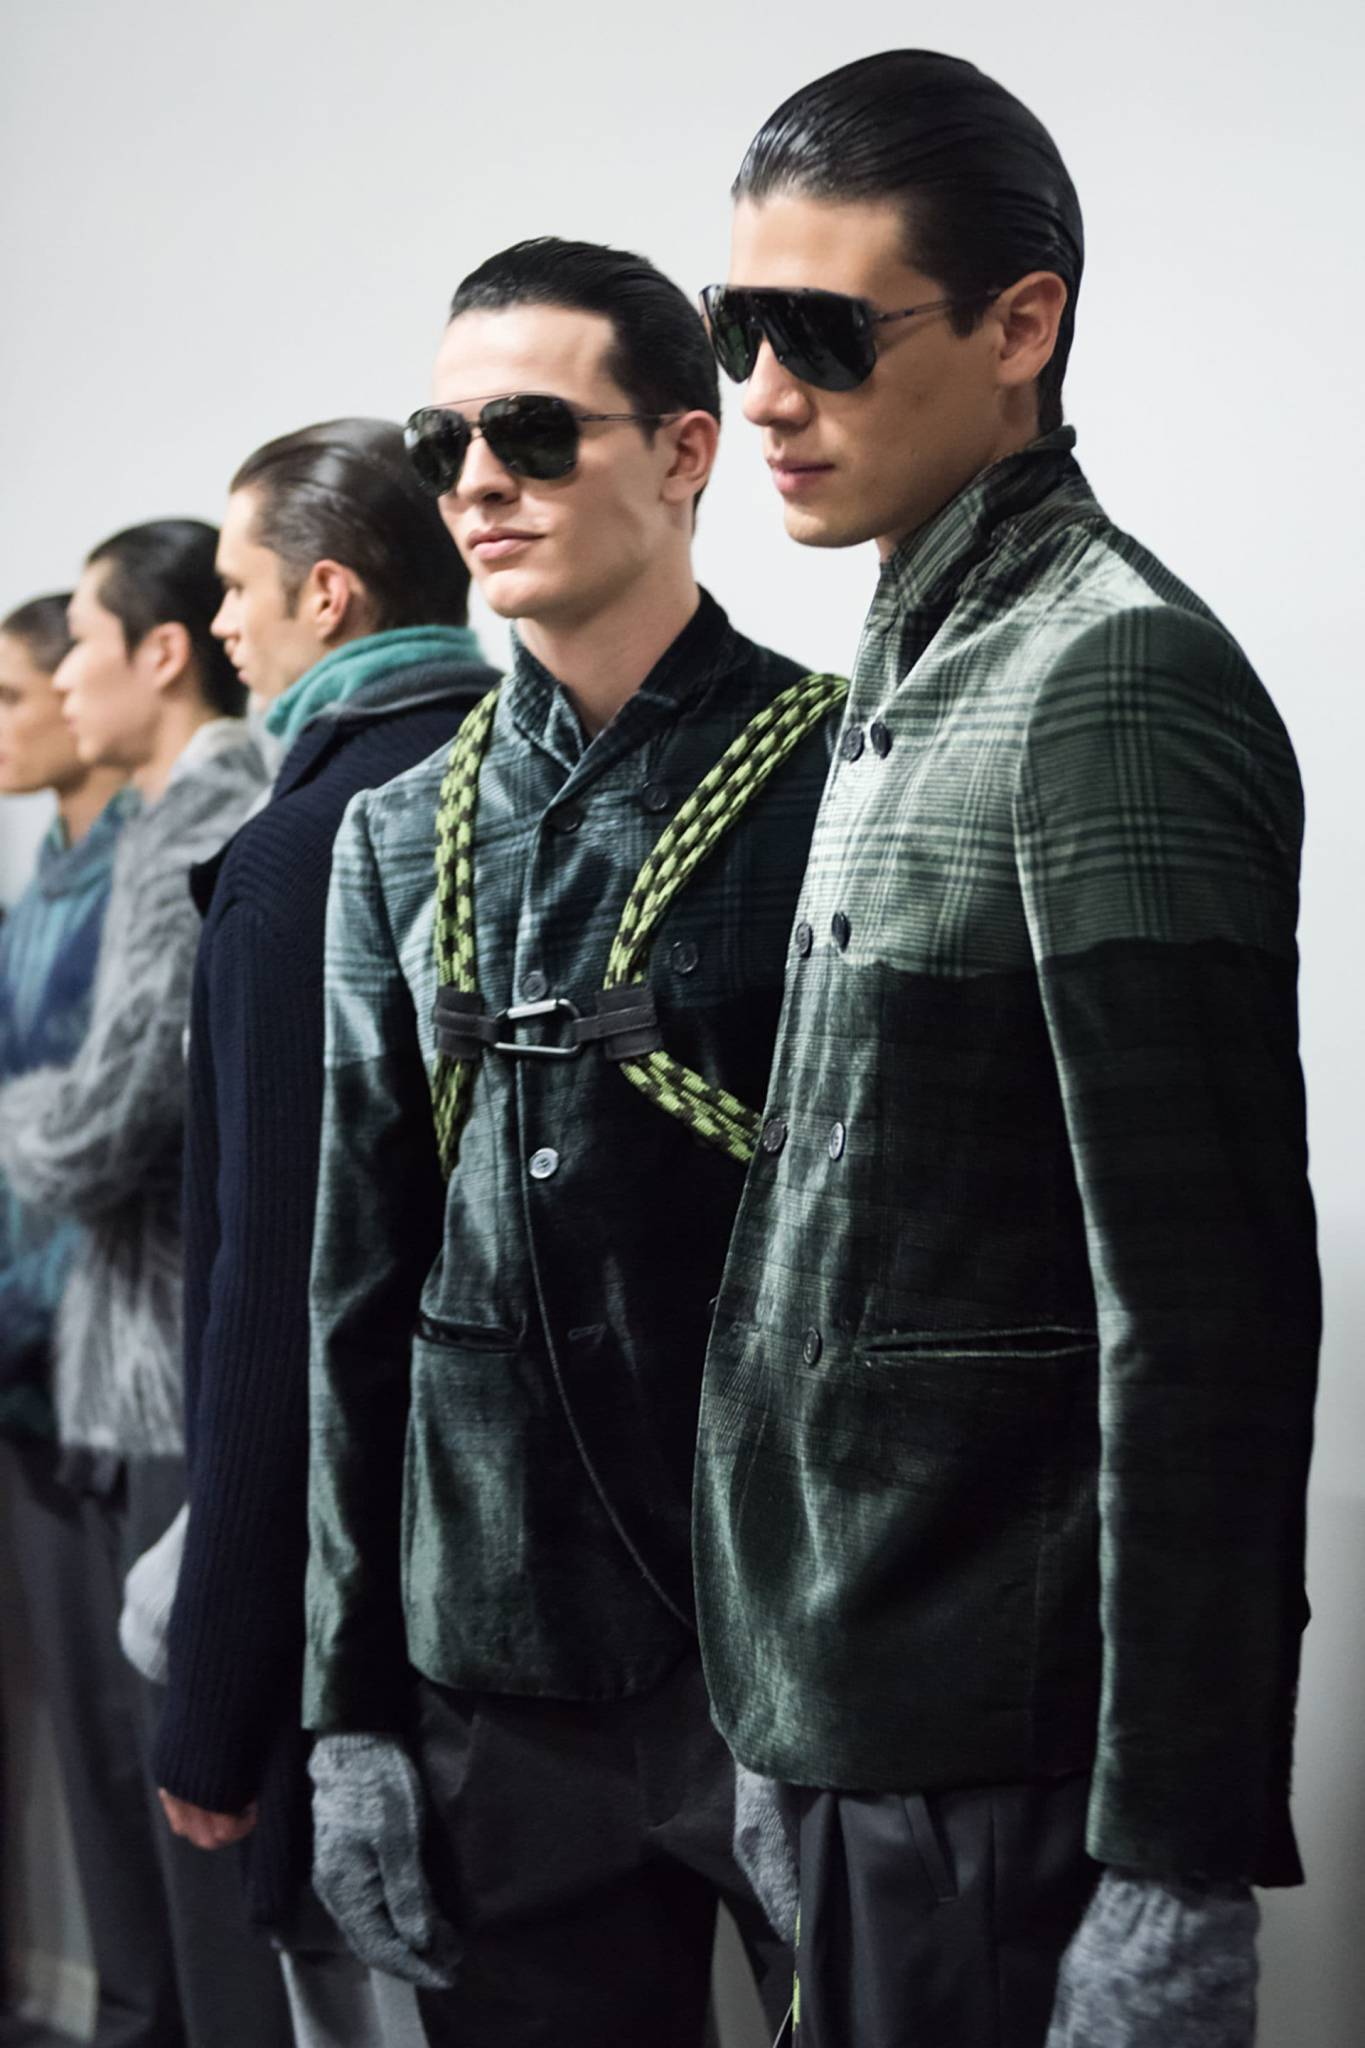 emporio armani fashion designer en Milano Digital Fashion Week del catorce al diecisiete de julio de dos mil veinte 12